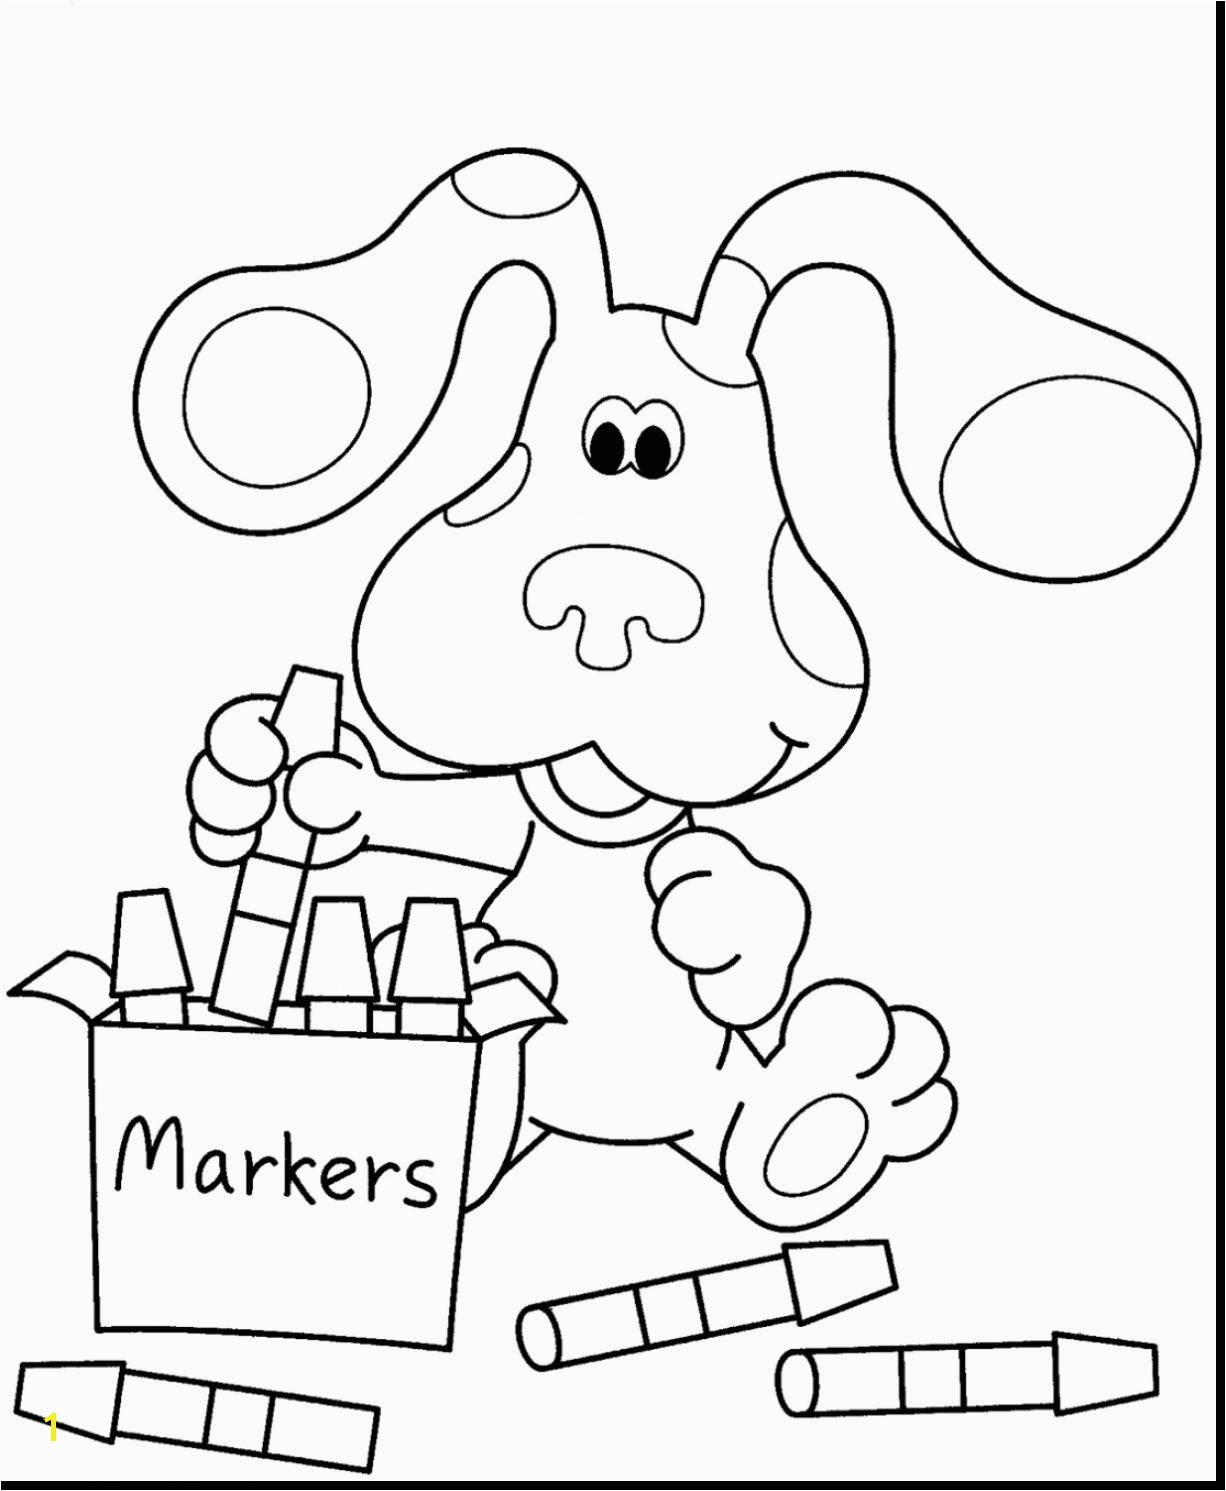 Blaze and the Monster Machines Nick Jr Coloring Pages Extraordinary Blaze and the Monster Machines Nick Jr Coloring Pages